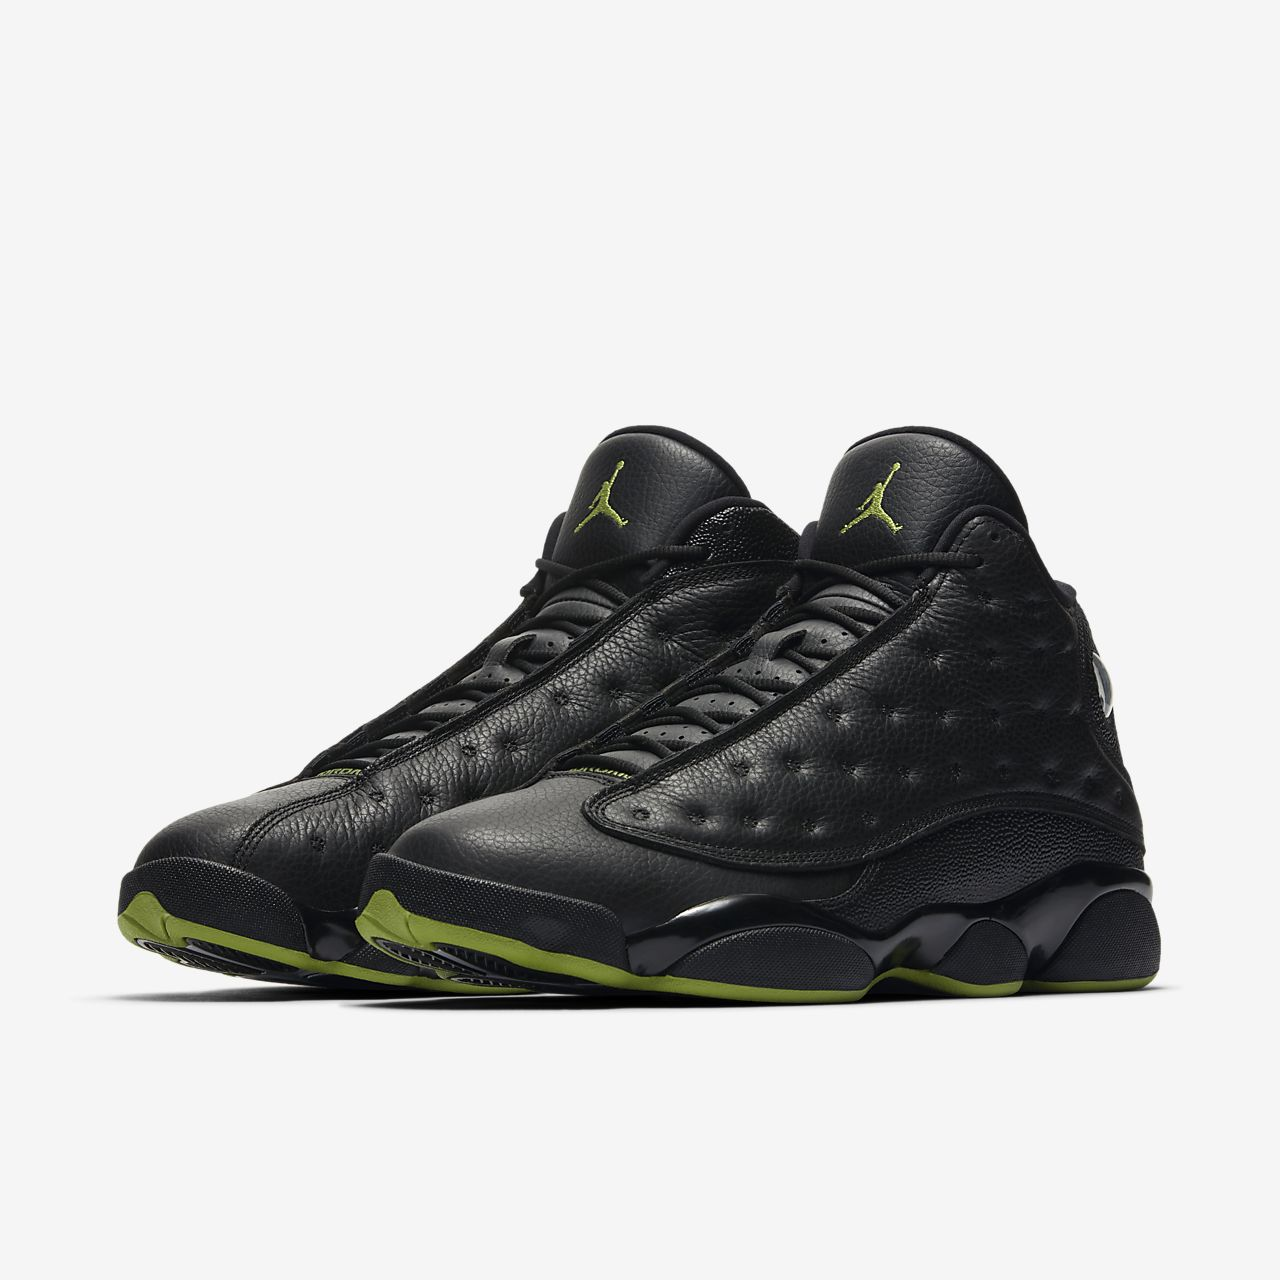 new jordan shoes 13 retro colorways shoes stores 765917